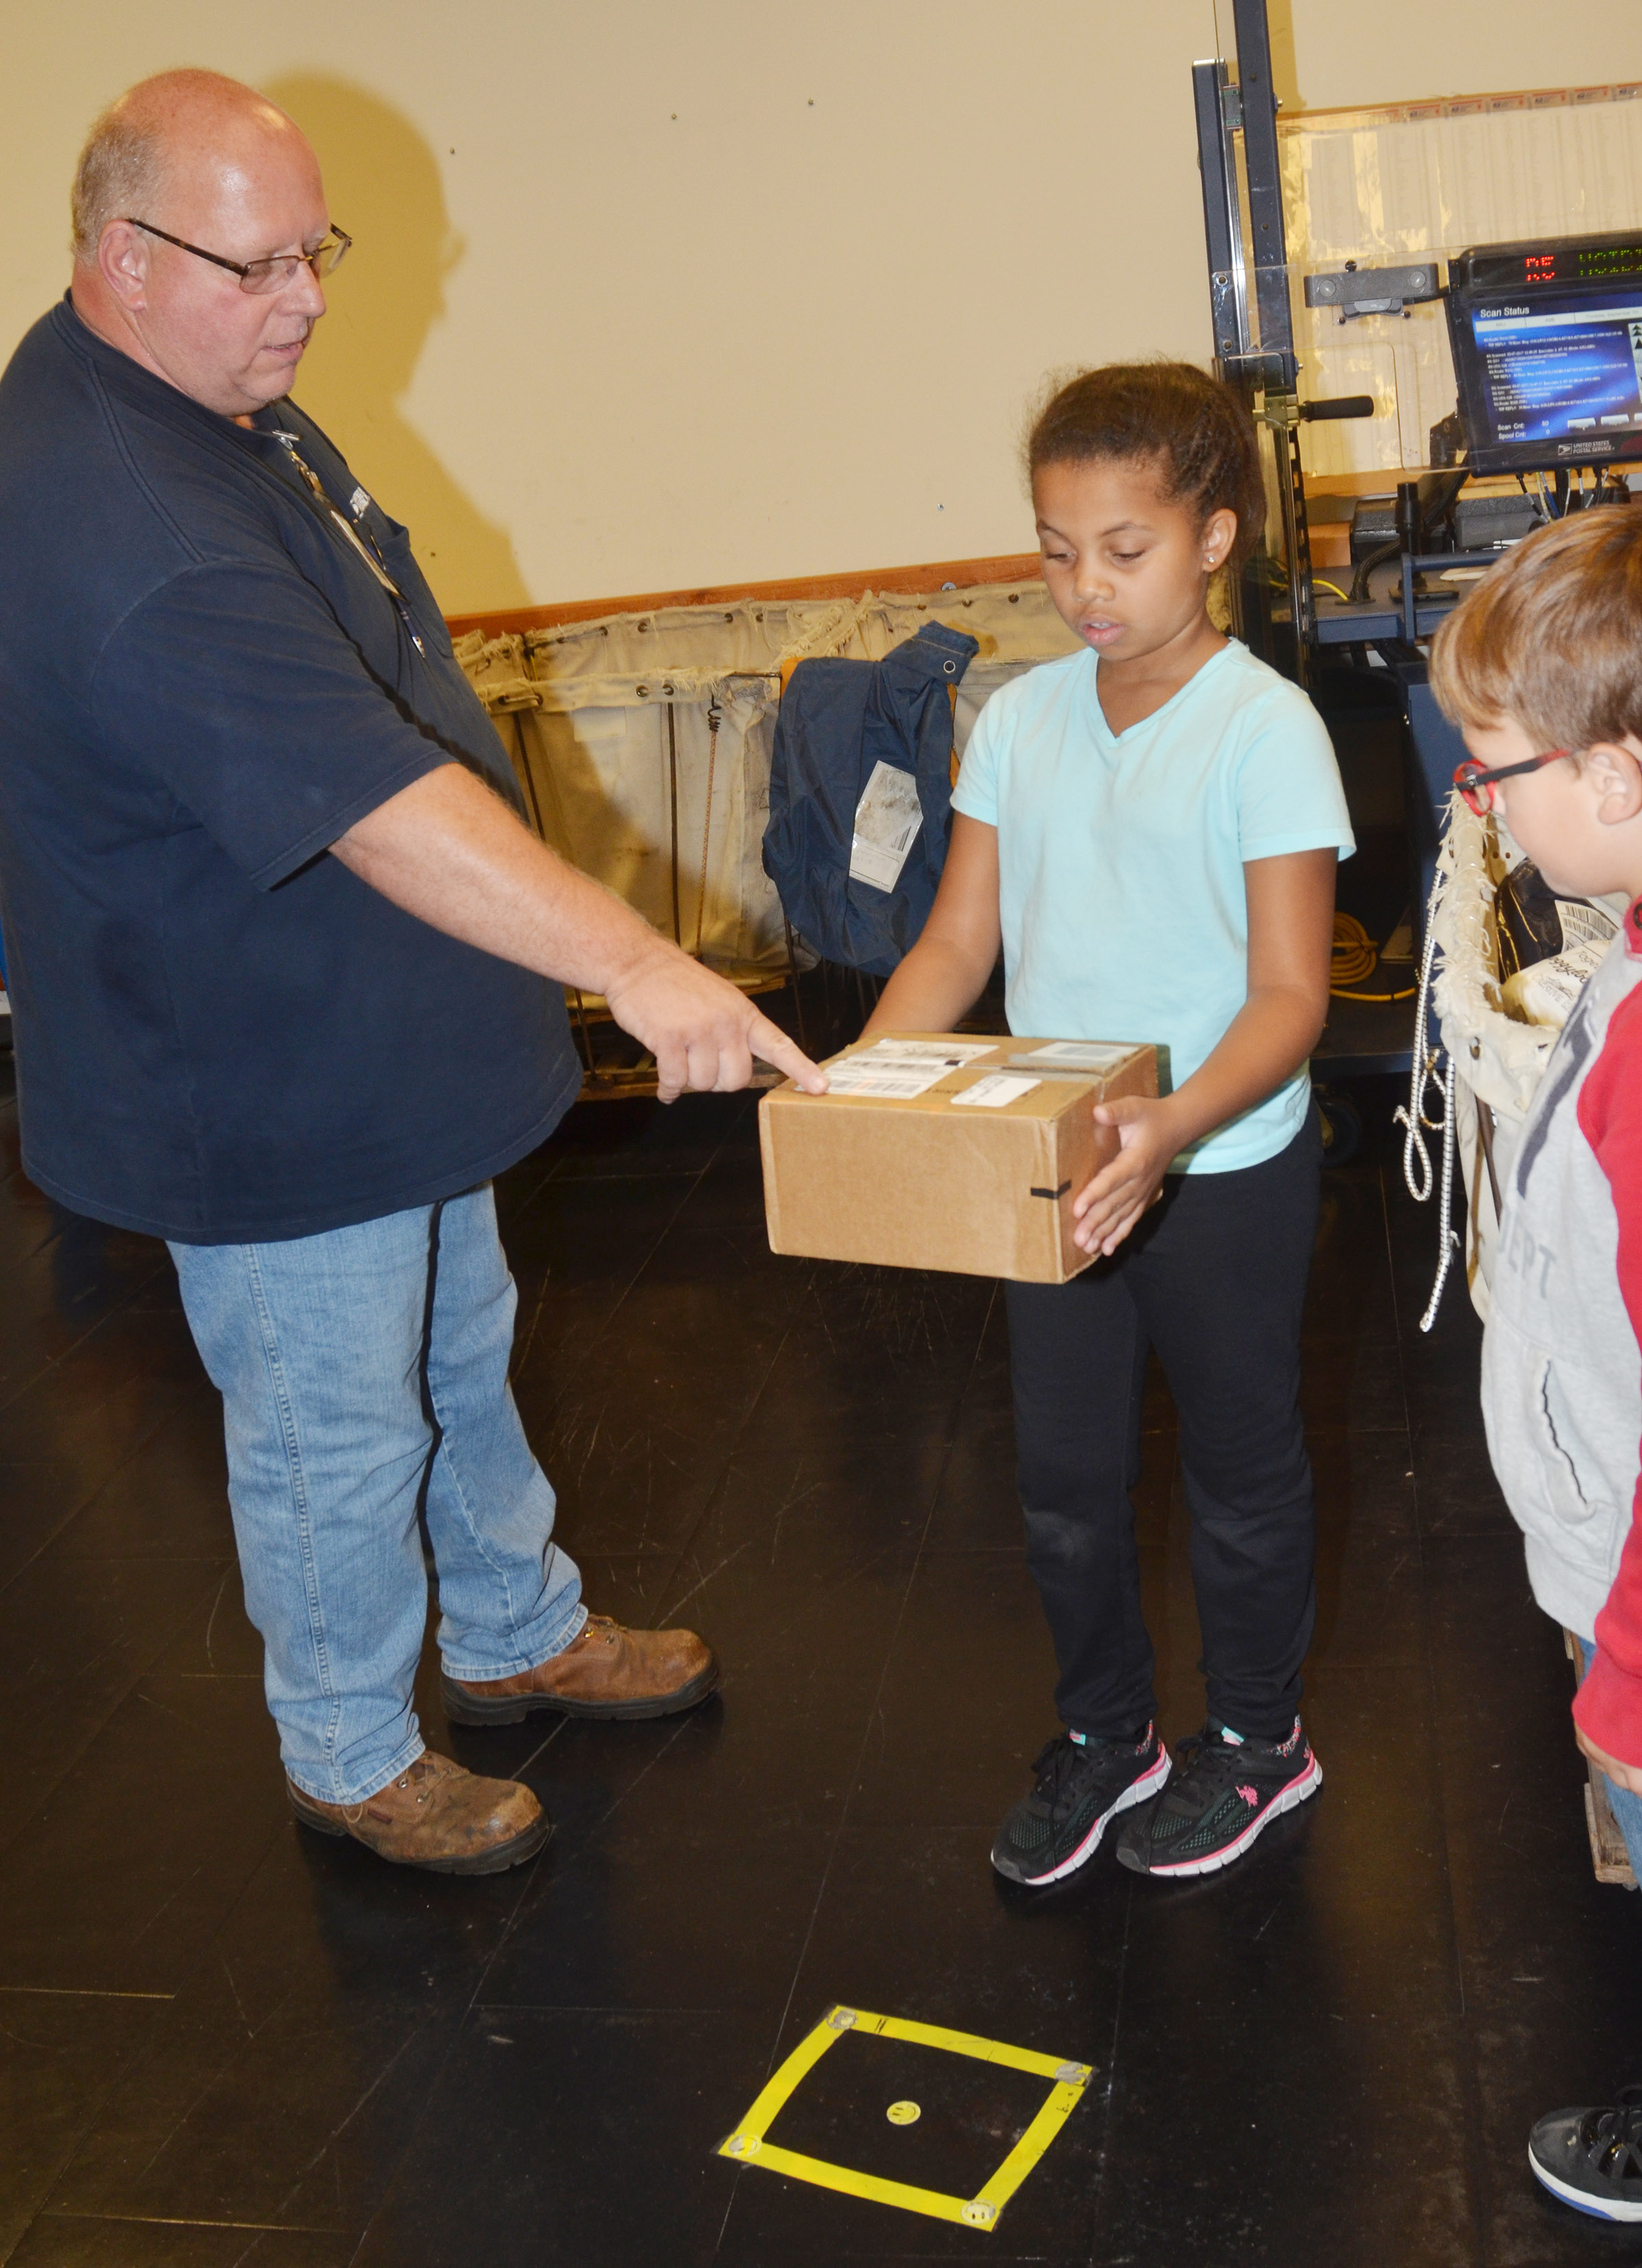 Campbellsville Post Office employee Scott Darst shows CES second-grader Journey Webb how a robot can scan a package and tell which route corresponds with its address.